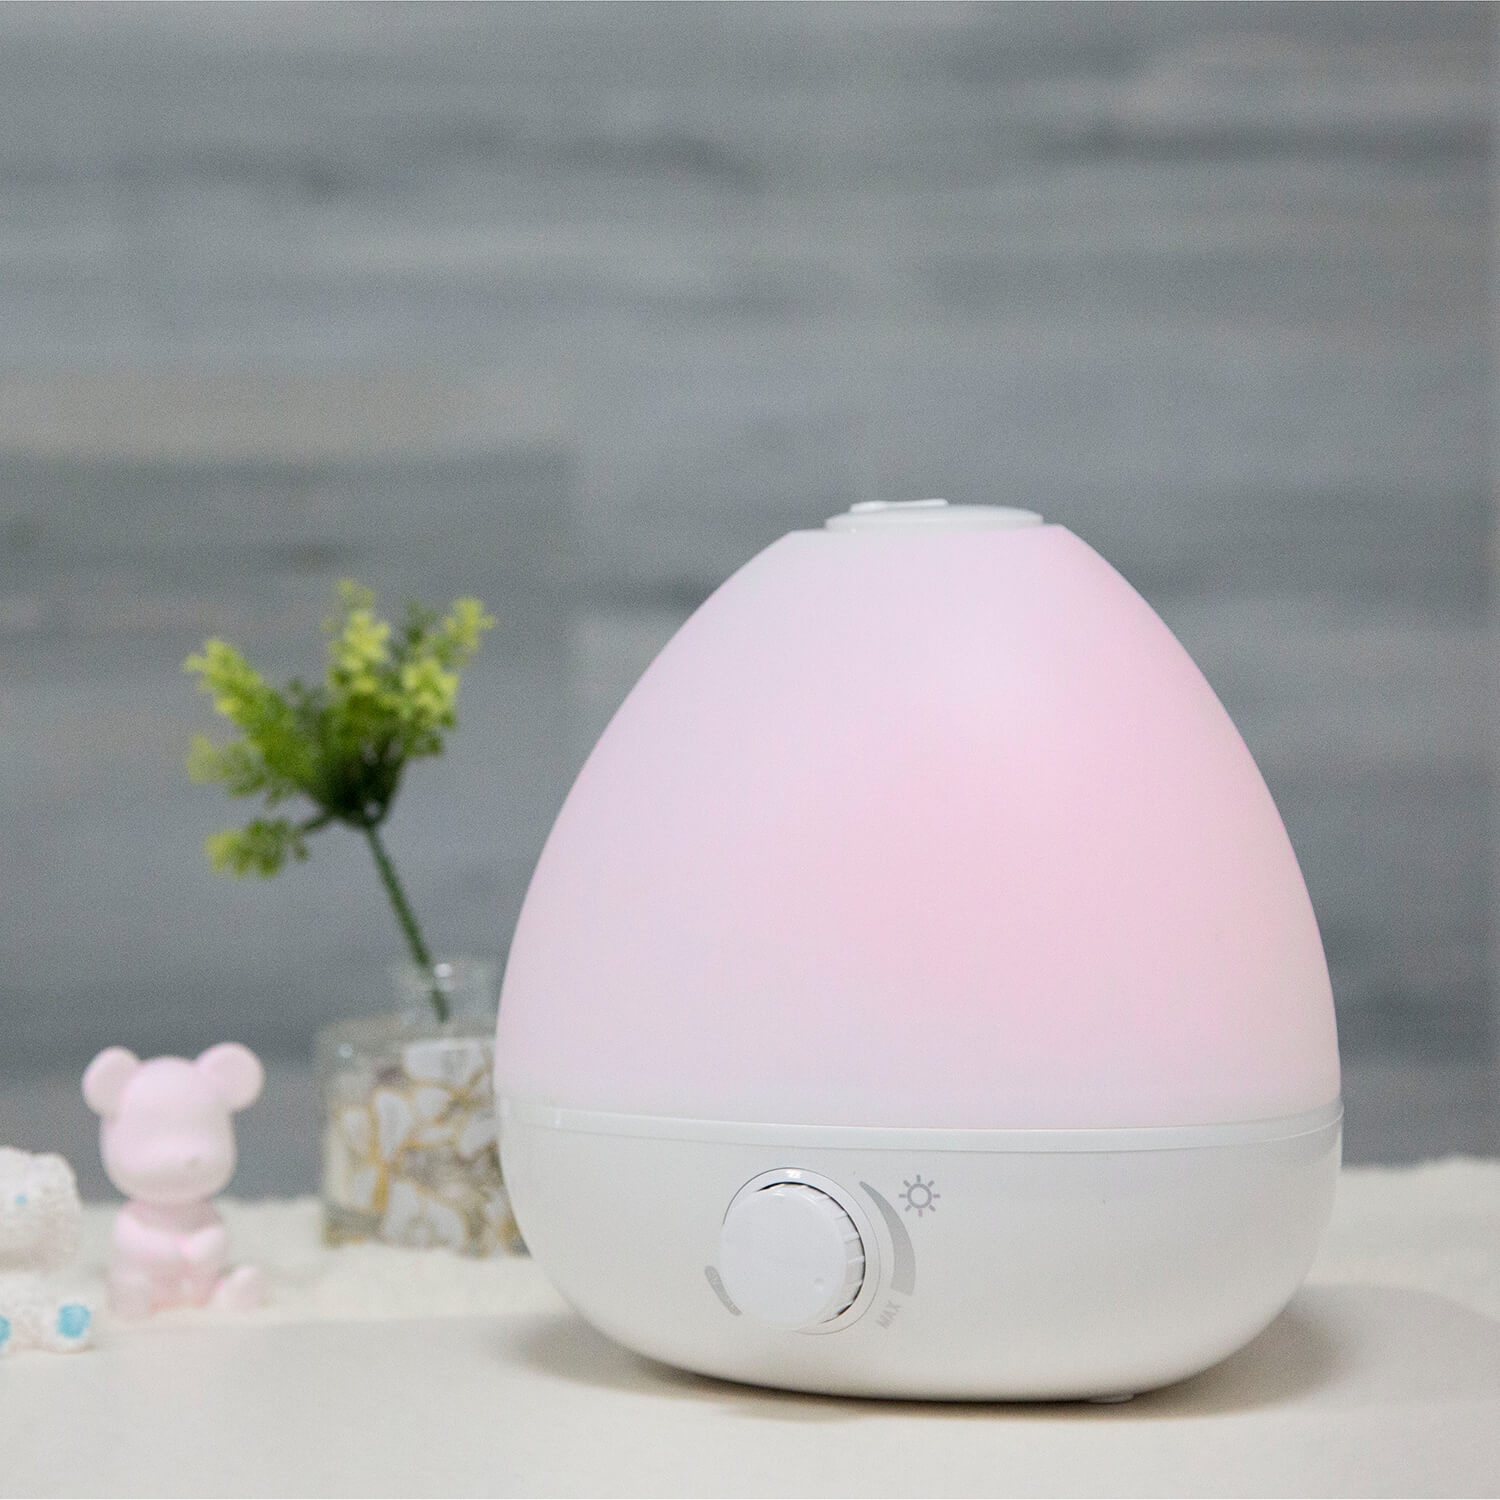 Nordhaus Ultrasonic Humidifier